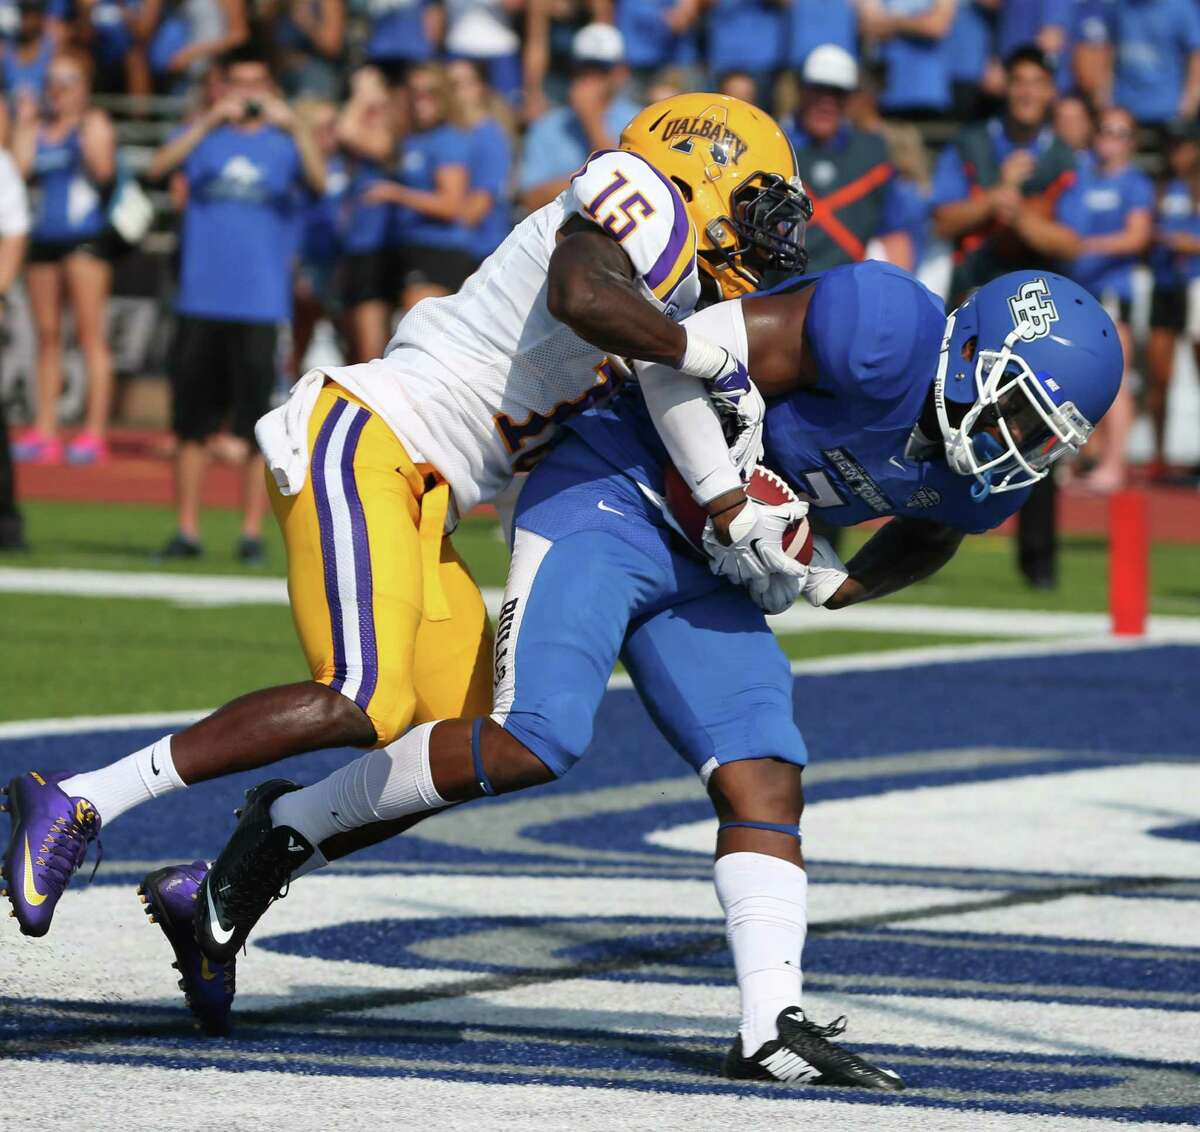 Buffalo wide receiver Marcus McGill (7) beats UAlbany safety Rayshan Clark (15) for a first down in the first quarter at Universitiy at Buffalo Stadium in Amherst, N.Y., on Saturday, Sept. 5, 2015. (James P. McCoy/ Buffalo News)